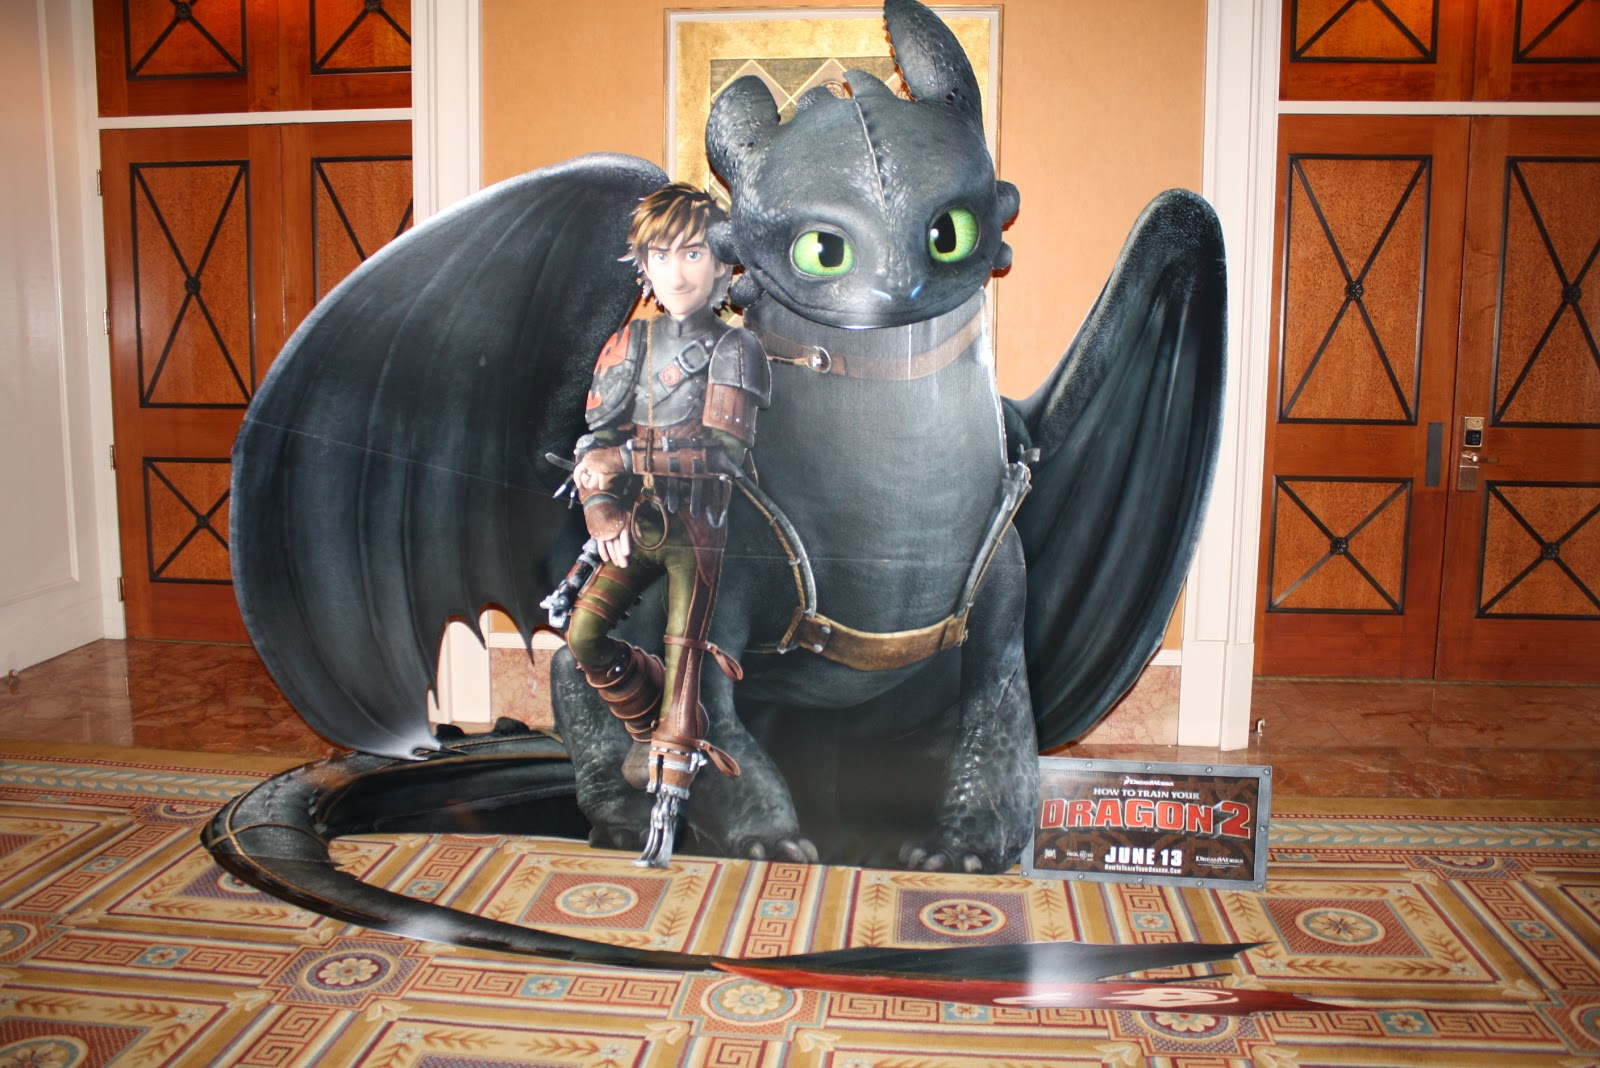 Full Resolution Image Legendofeneknapperdragonbluray1080px26471hqjudas4  Snapshot 1132 20140504 213956g How To Train Your Dragon Wiki